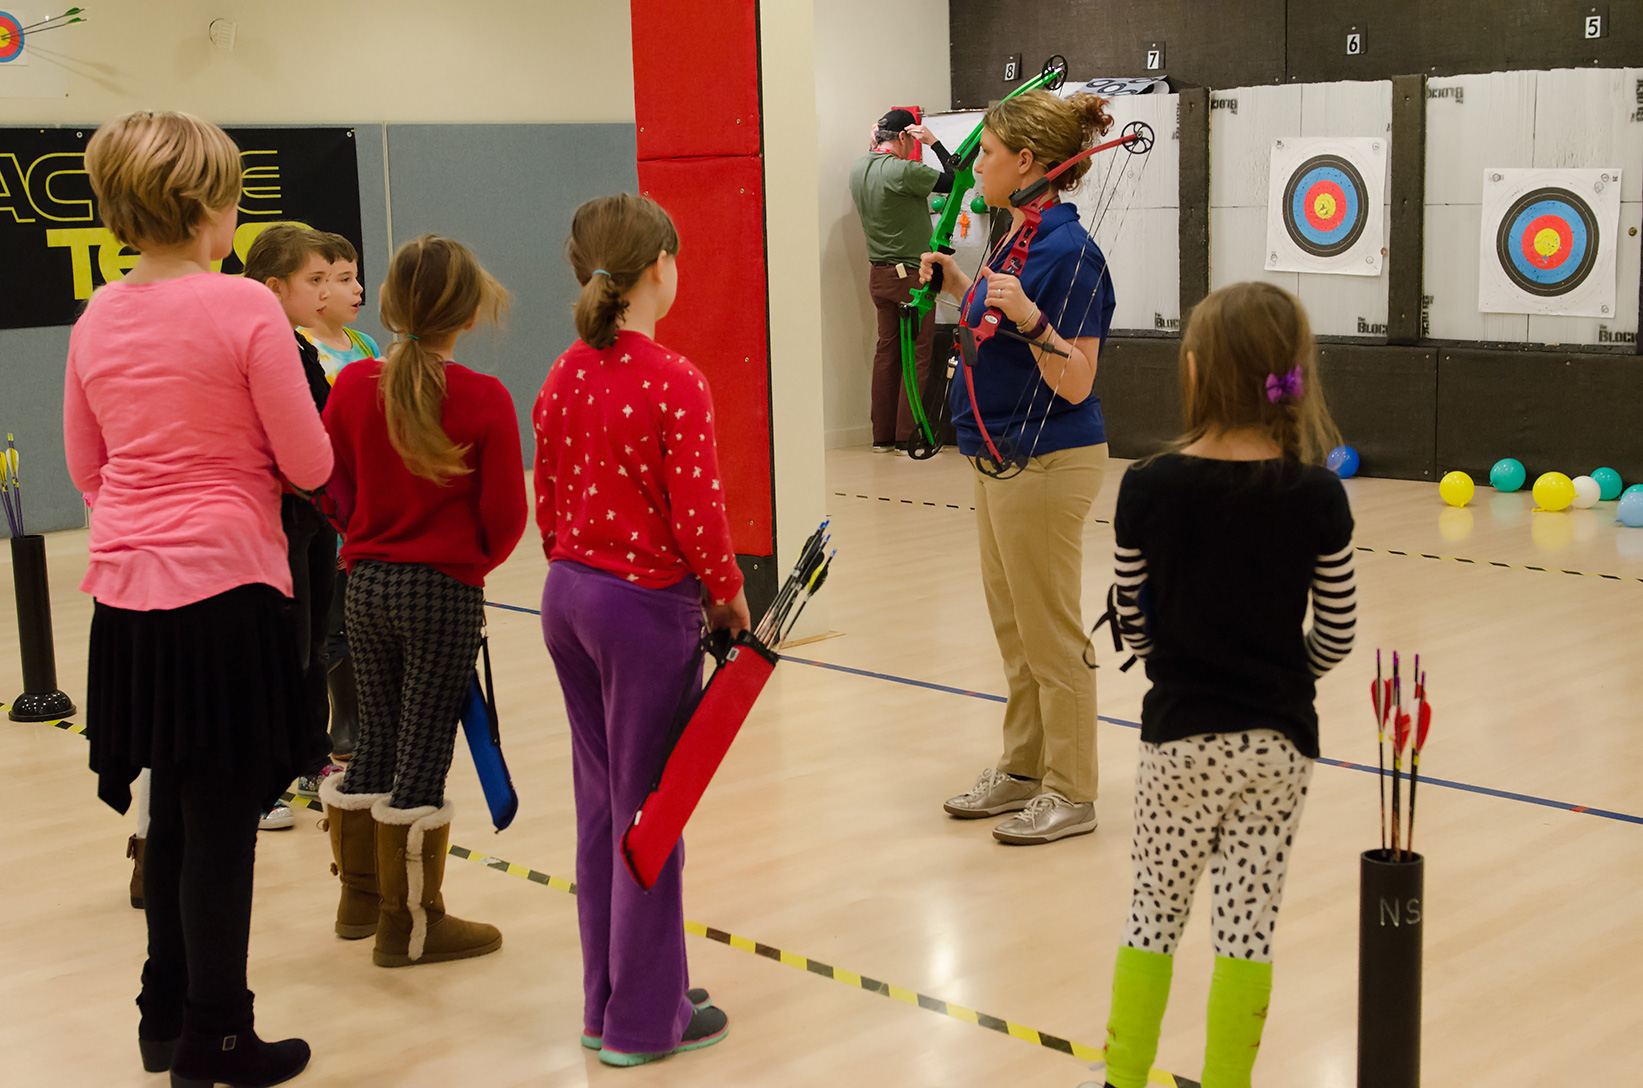 Archery Lessons in Washington